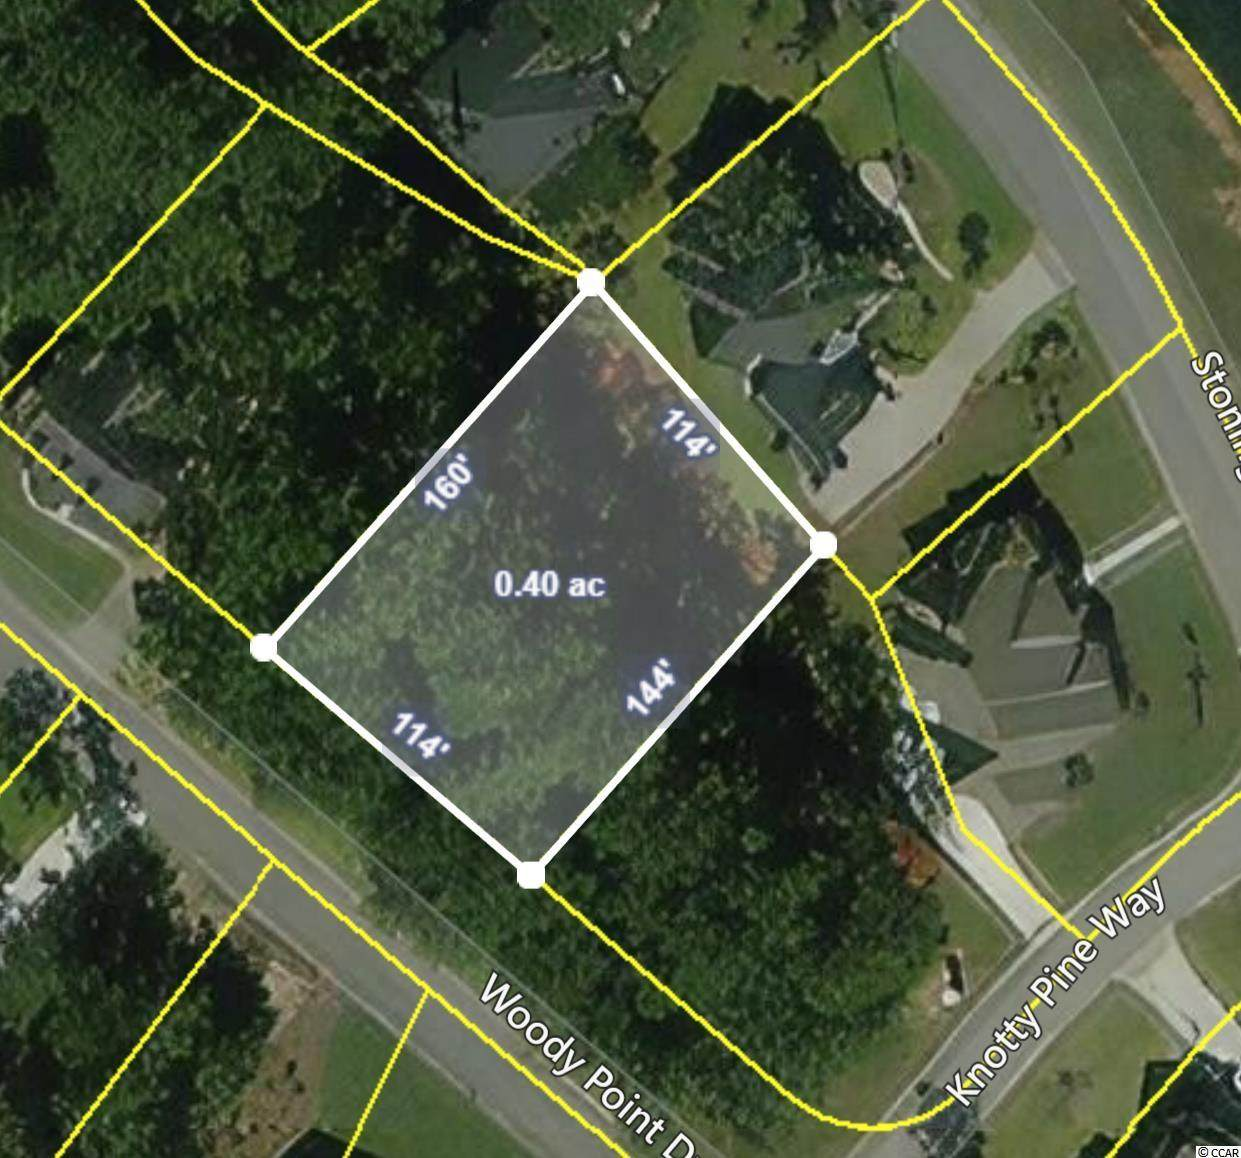 Lot 71 Woody Point Dr. - Photo 1